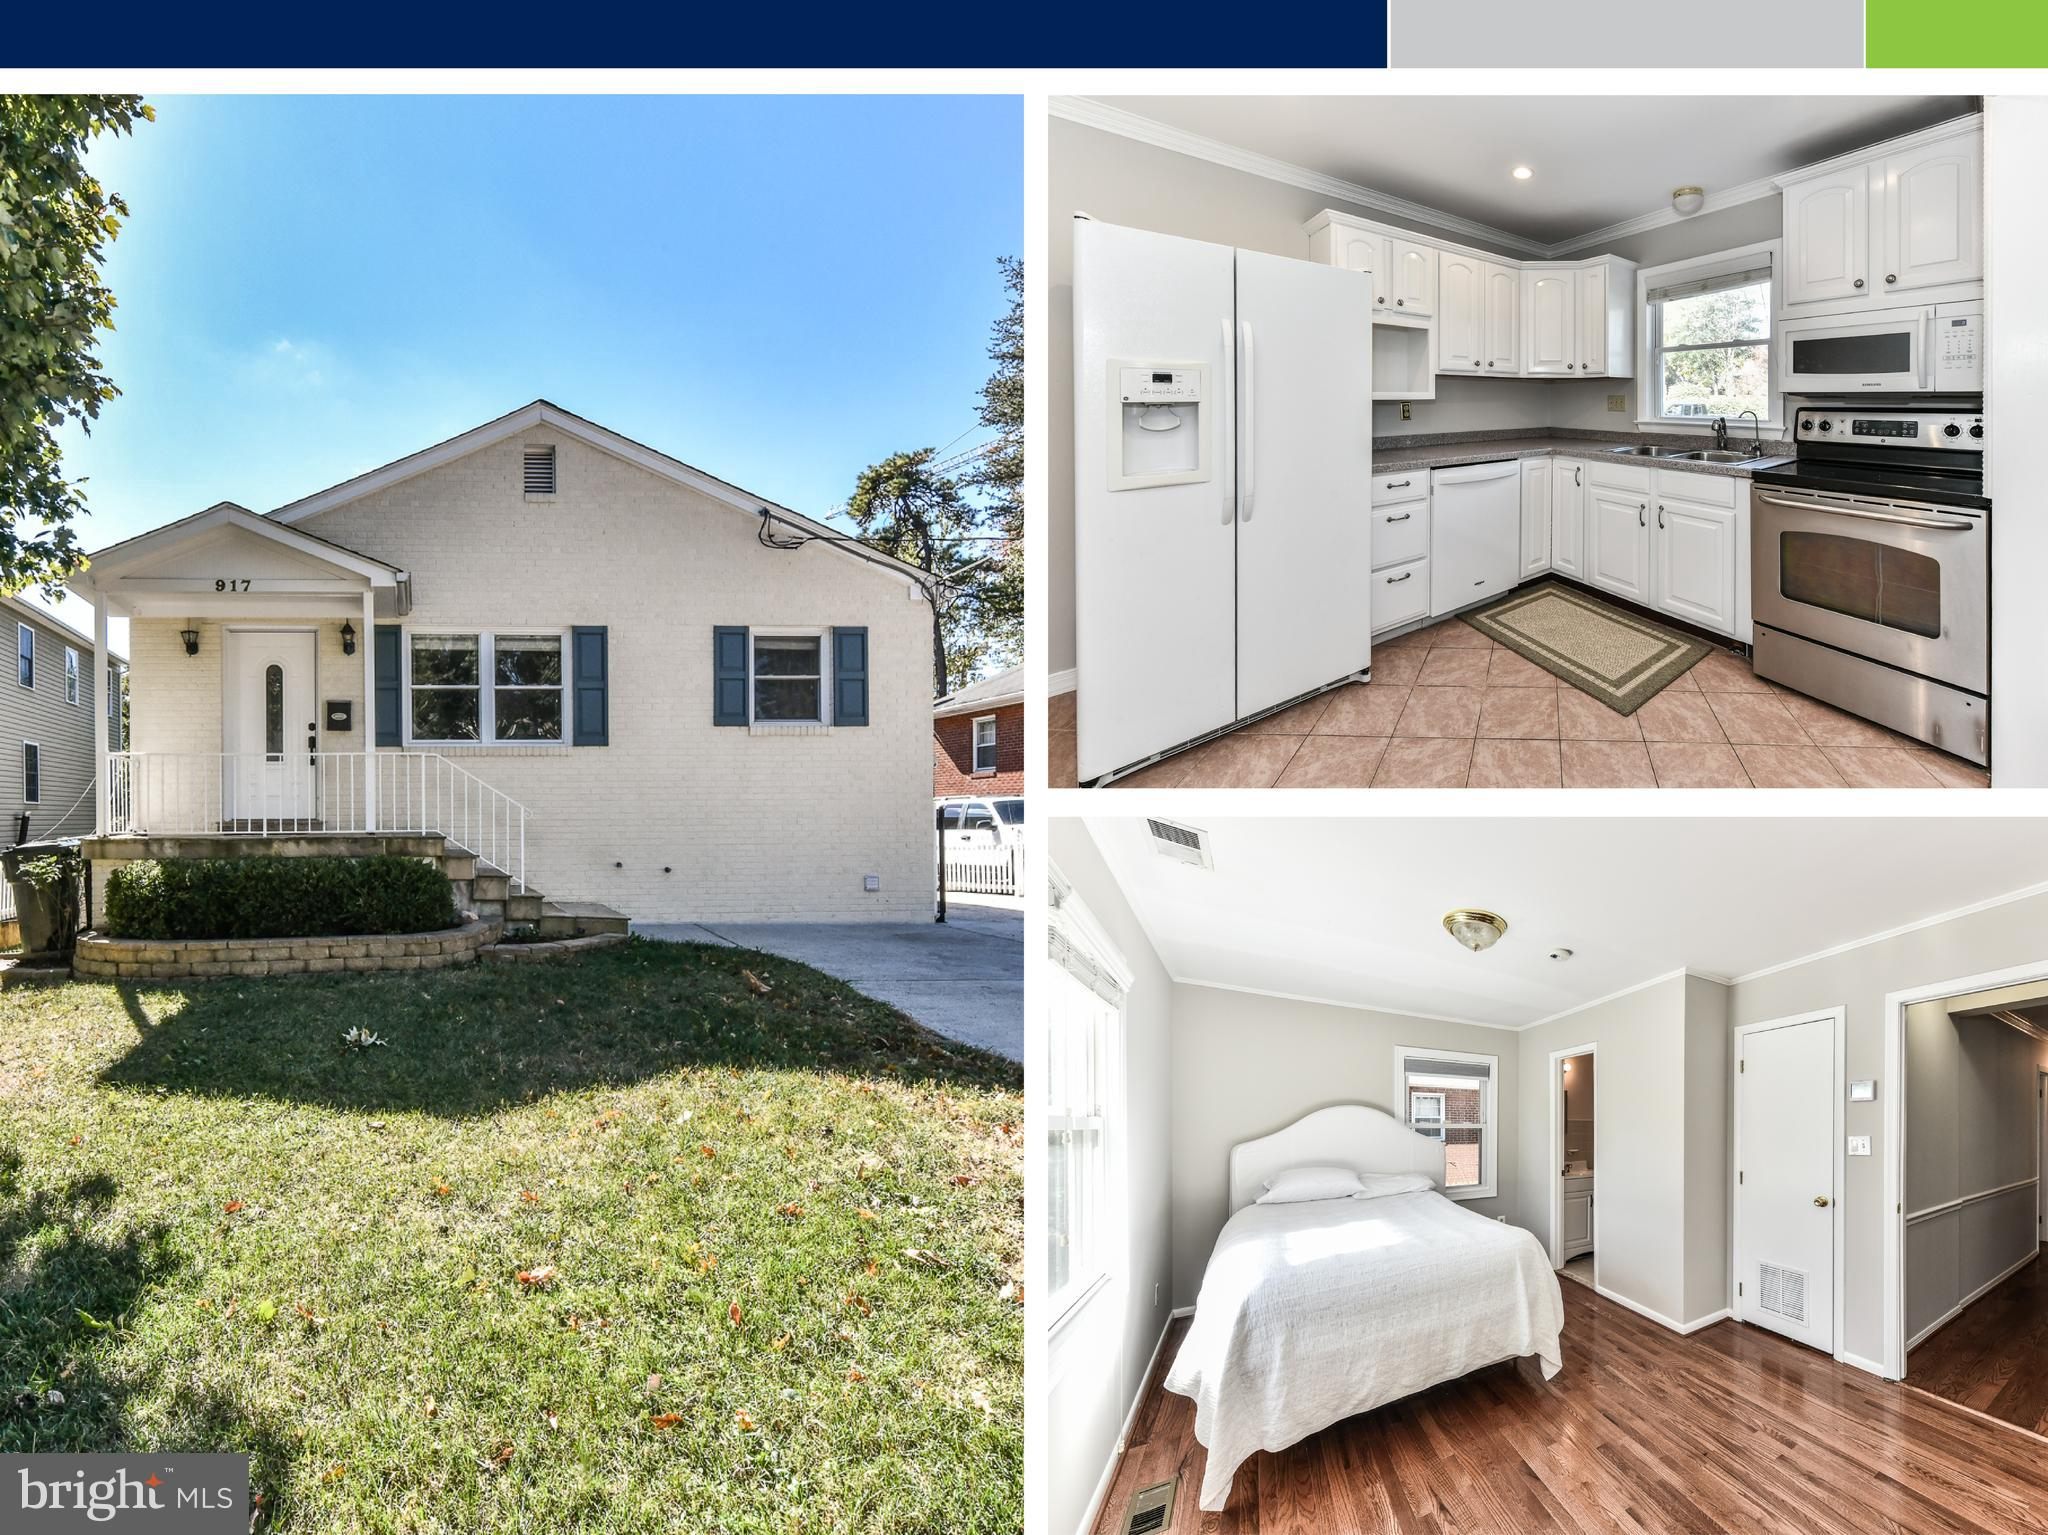 917 LINCOLN, FALLS CHURCH, VA 22042